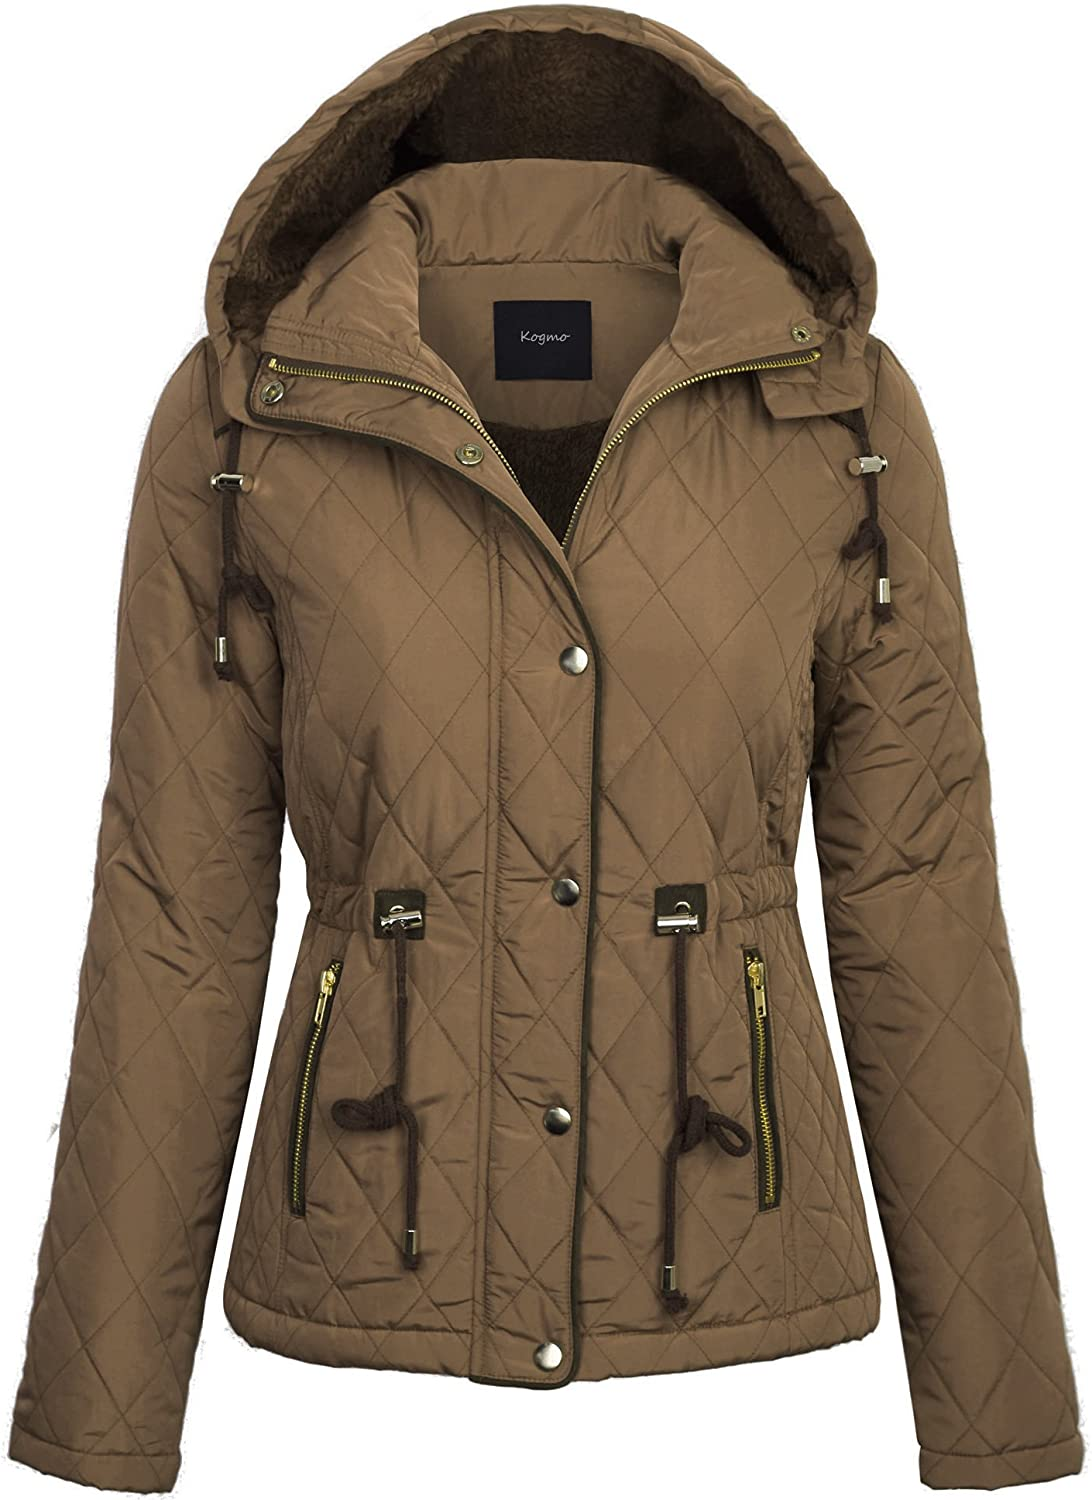 BOHENY Womens Fur Lined Lightweight Zip Up Quilted Jacket with Detatachable Hood